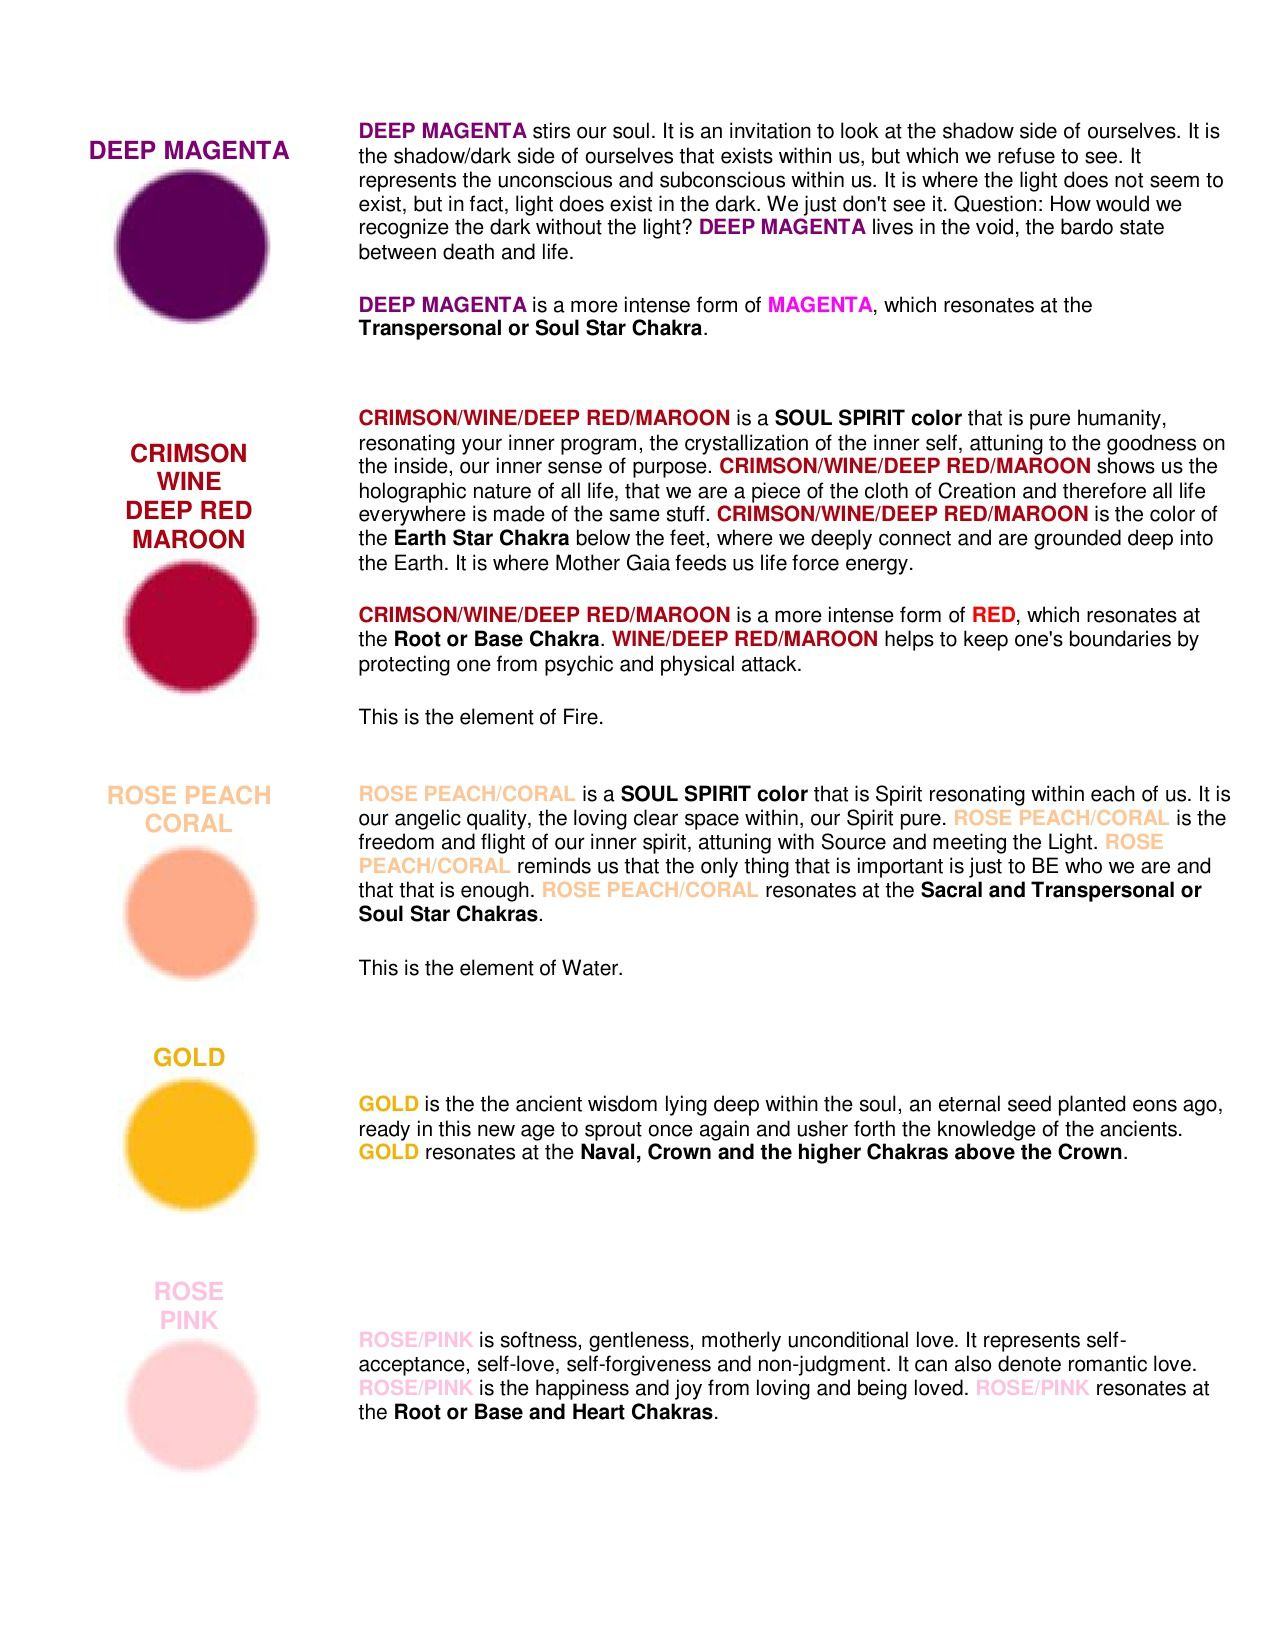 Colour therapy for myopia - You Can Find More Information About All The Colors Color Light And